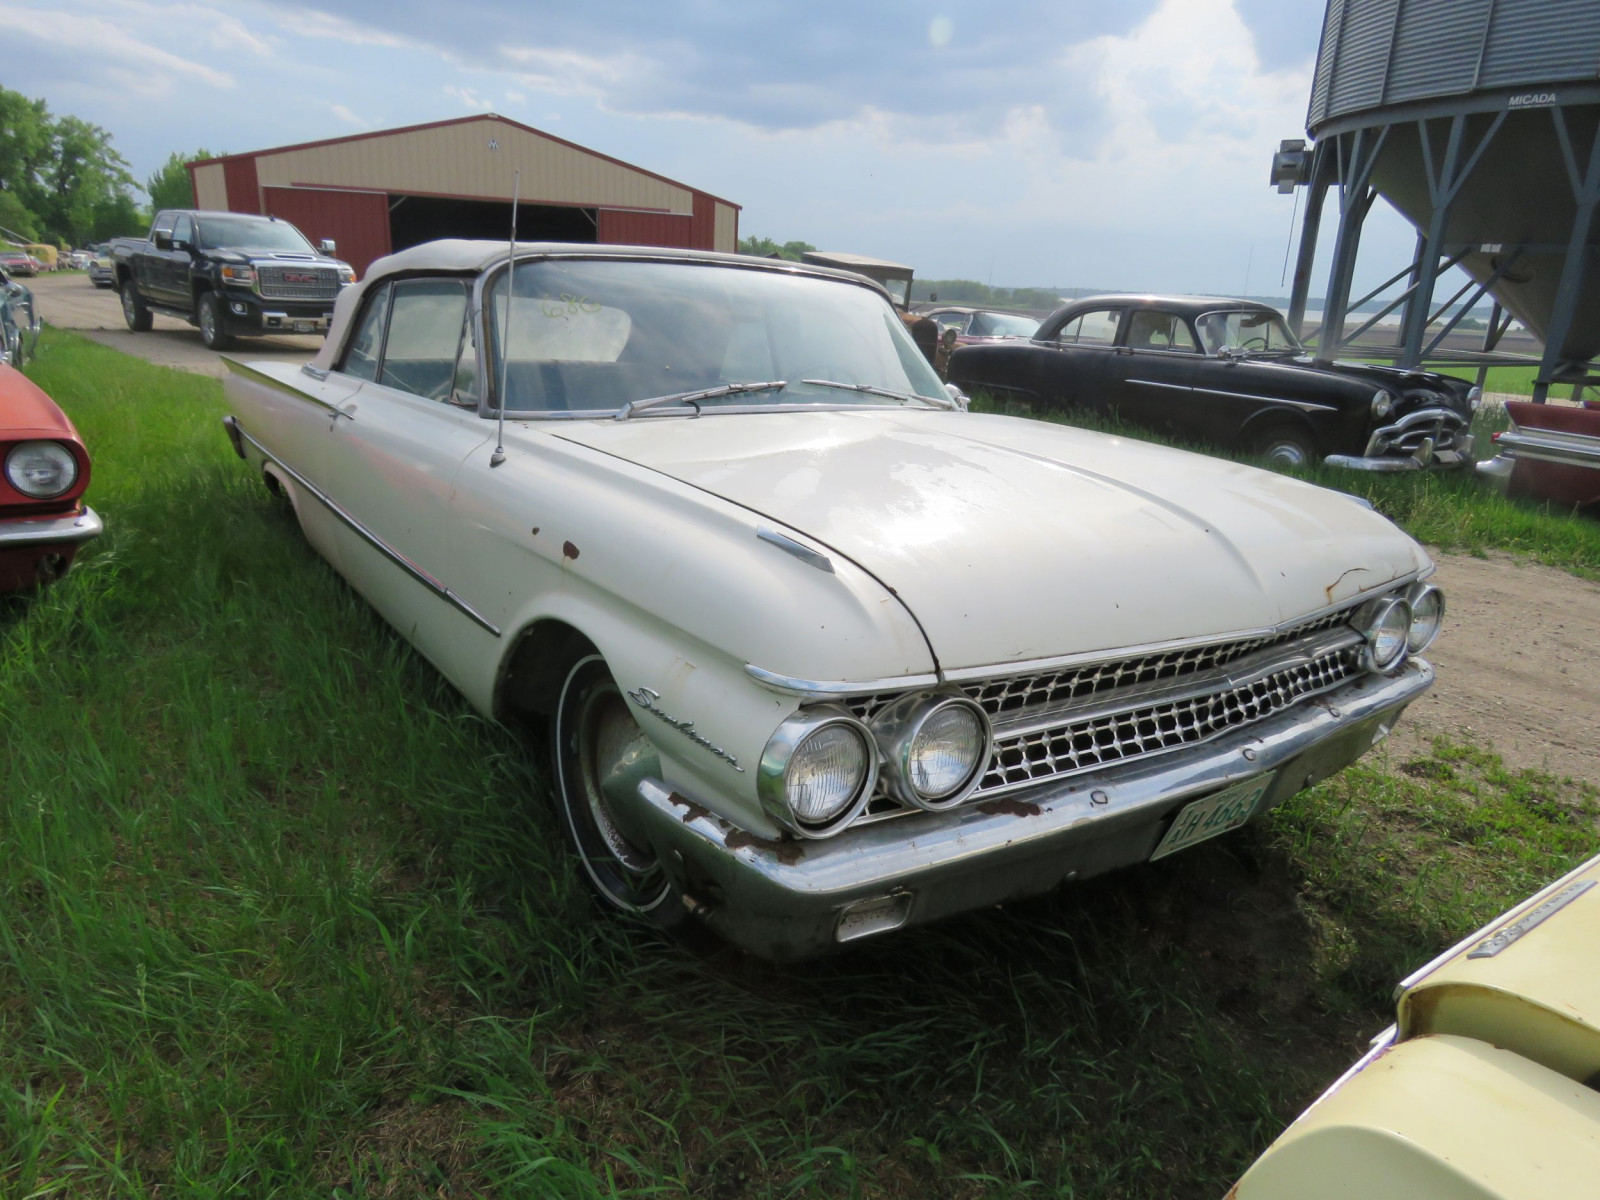 1961 Ford Sunliner Convertible 1G55W143311 - Image 1